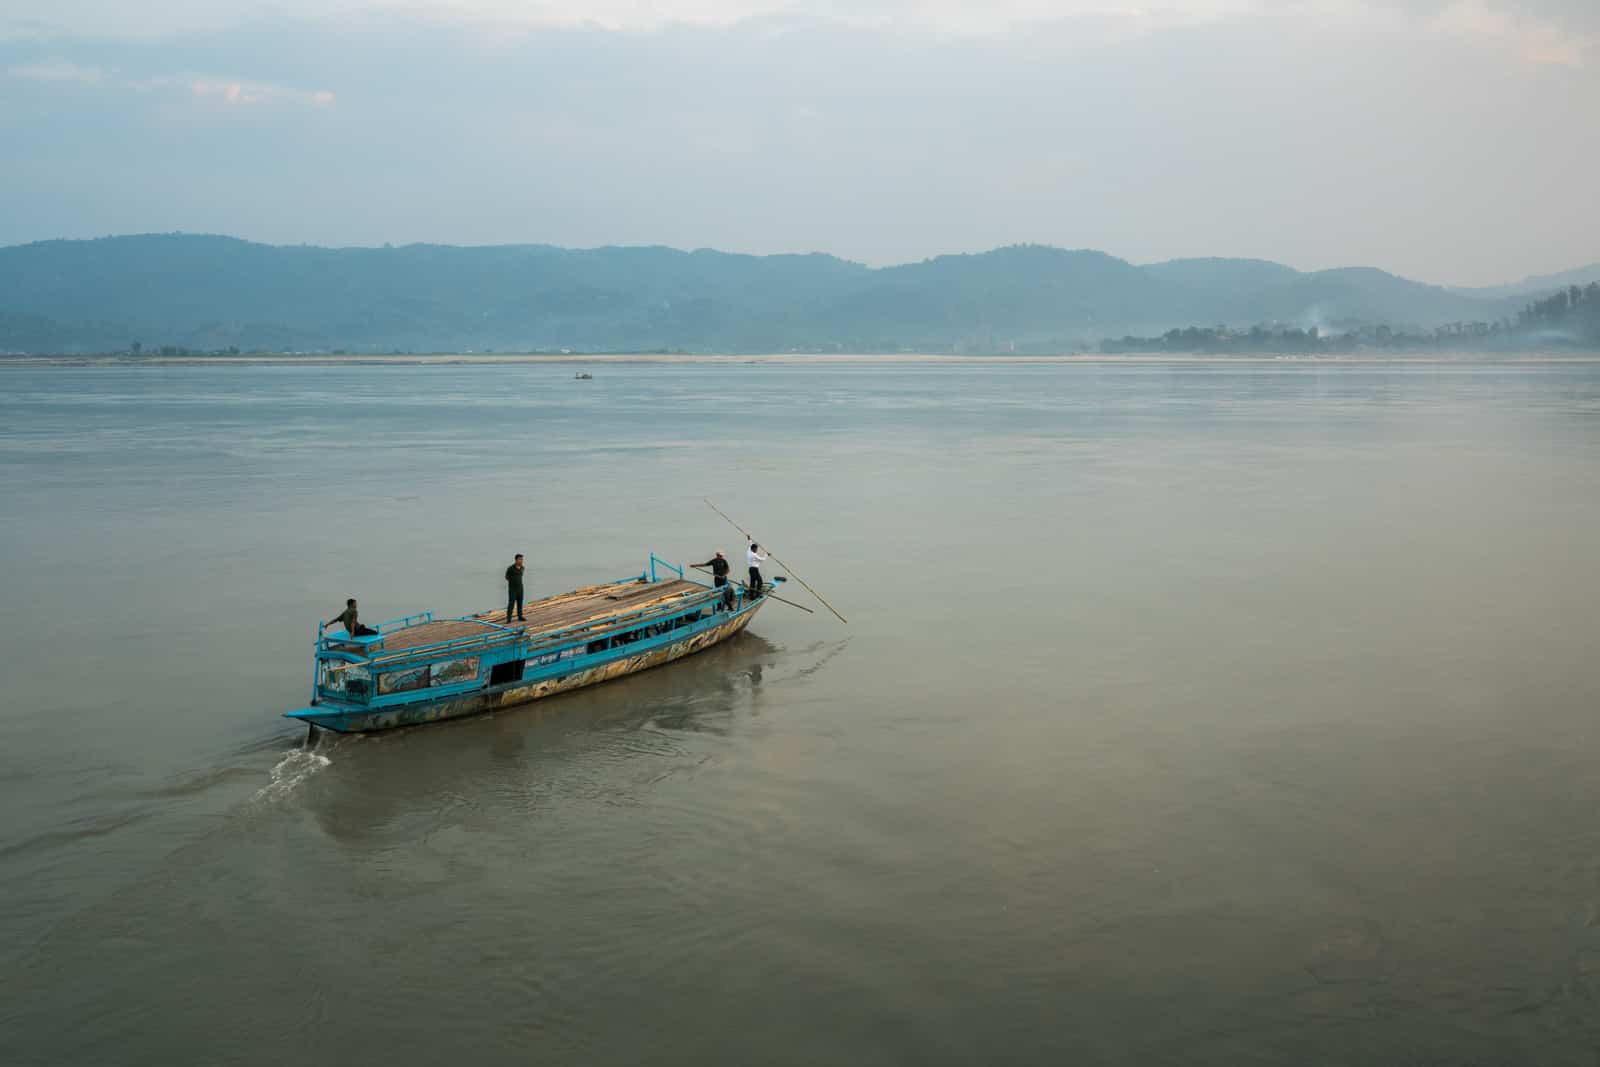 Review of my river cruise on the Brahmaputra with Assam Bengal Navigation - Country boat going out to test the water depth - Lost With Purpose travel blog